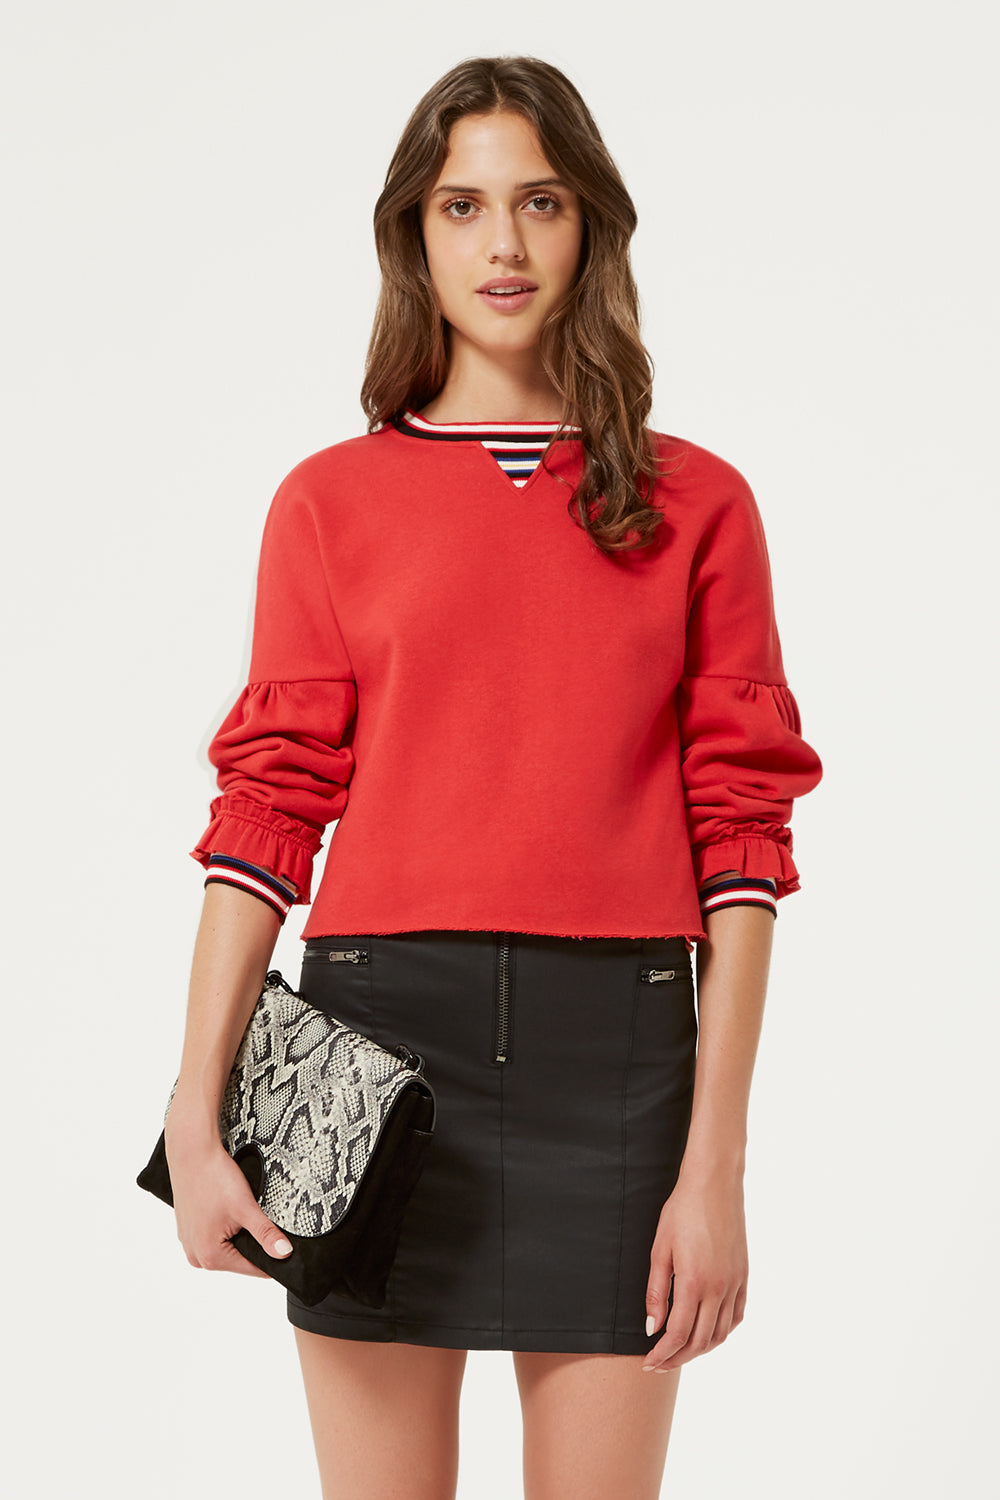 Rebecca Minkoff  Red Stripped Sweatshirt | Red Jewel Sweatshirt | Rebecca Minkoff